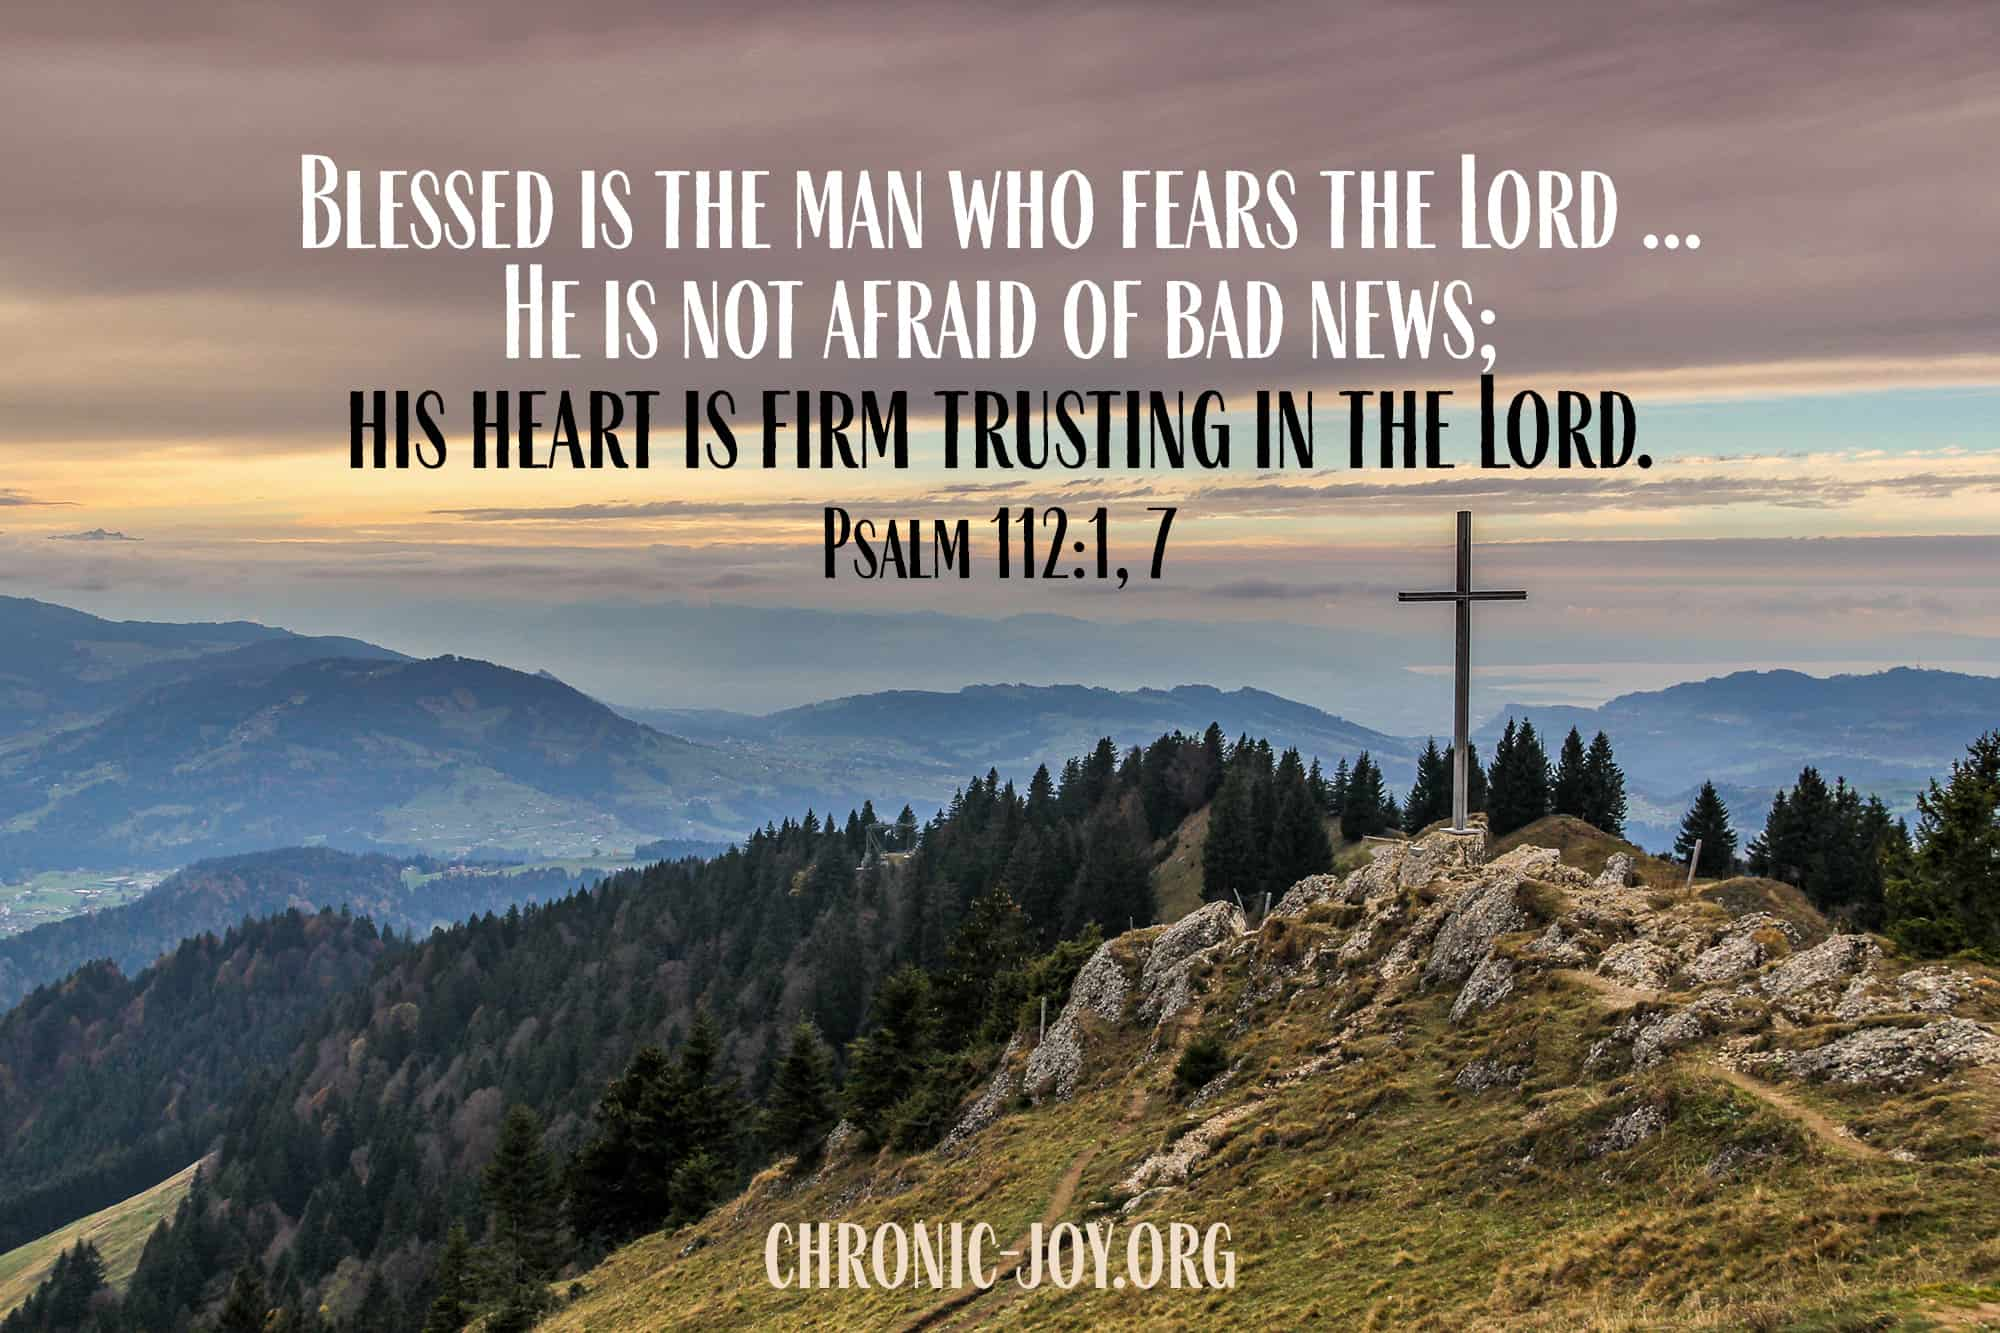 """Blessed is the man who fears the Lord ... He is not afraid of bad news; his heart is firm trusting in the Lord."" Psalm 112:1, 7"